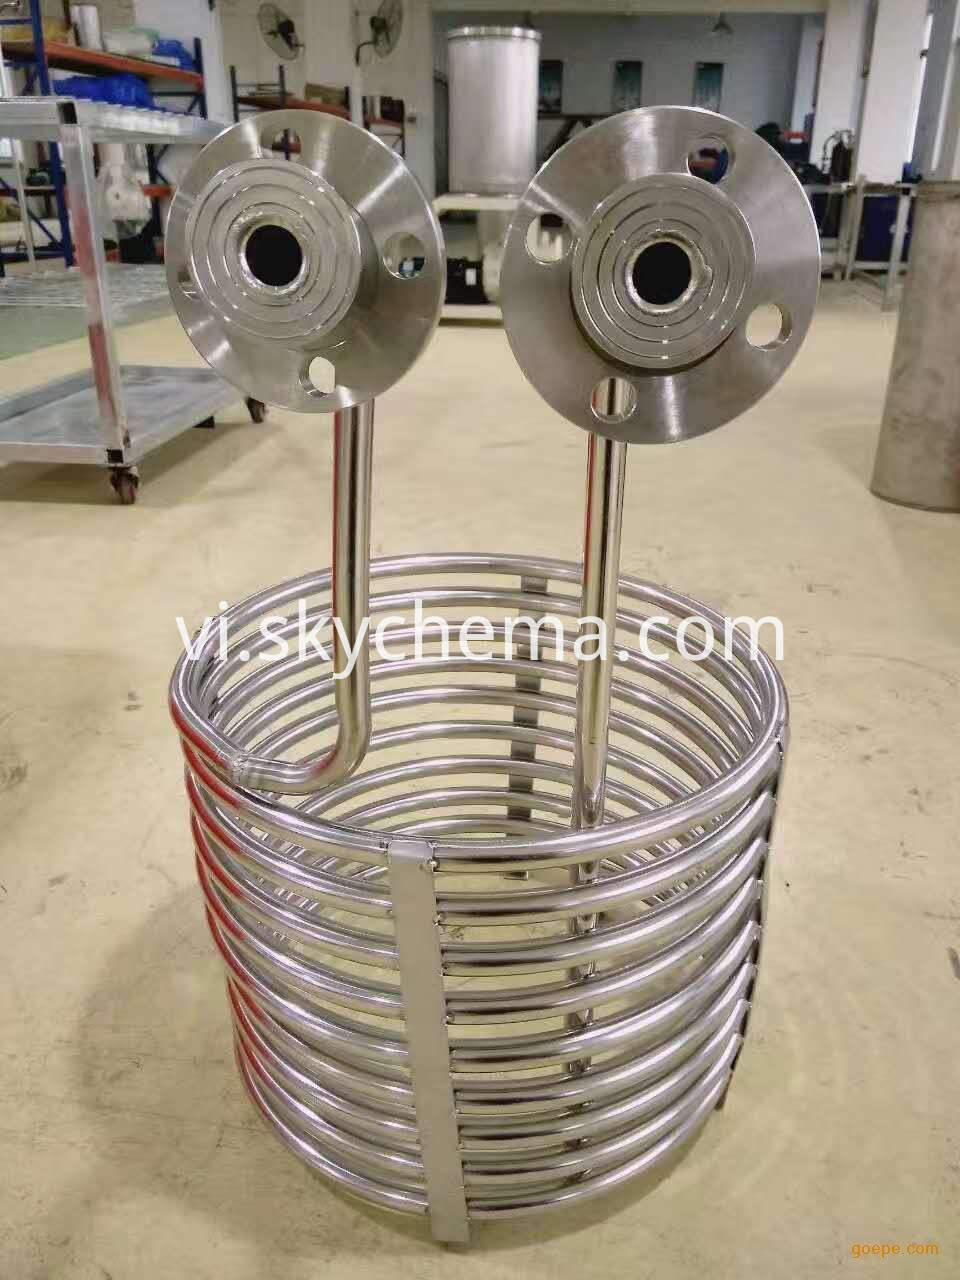 Titanium-immersed-coil-type-heat-exchanger.4-3